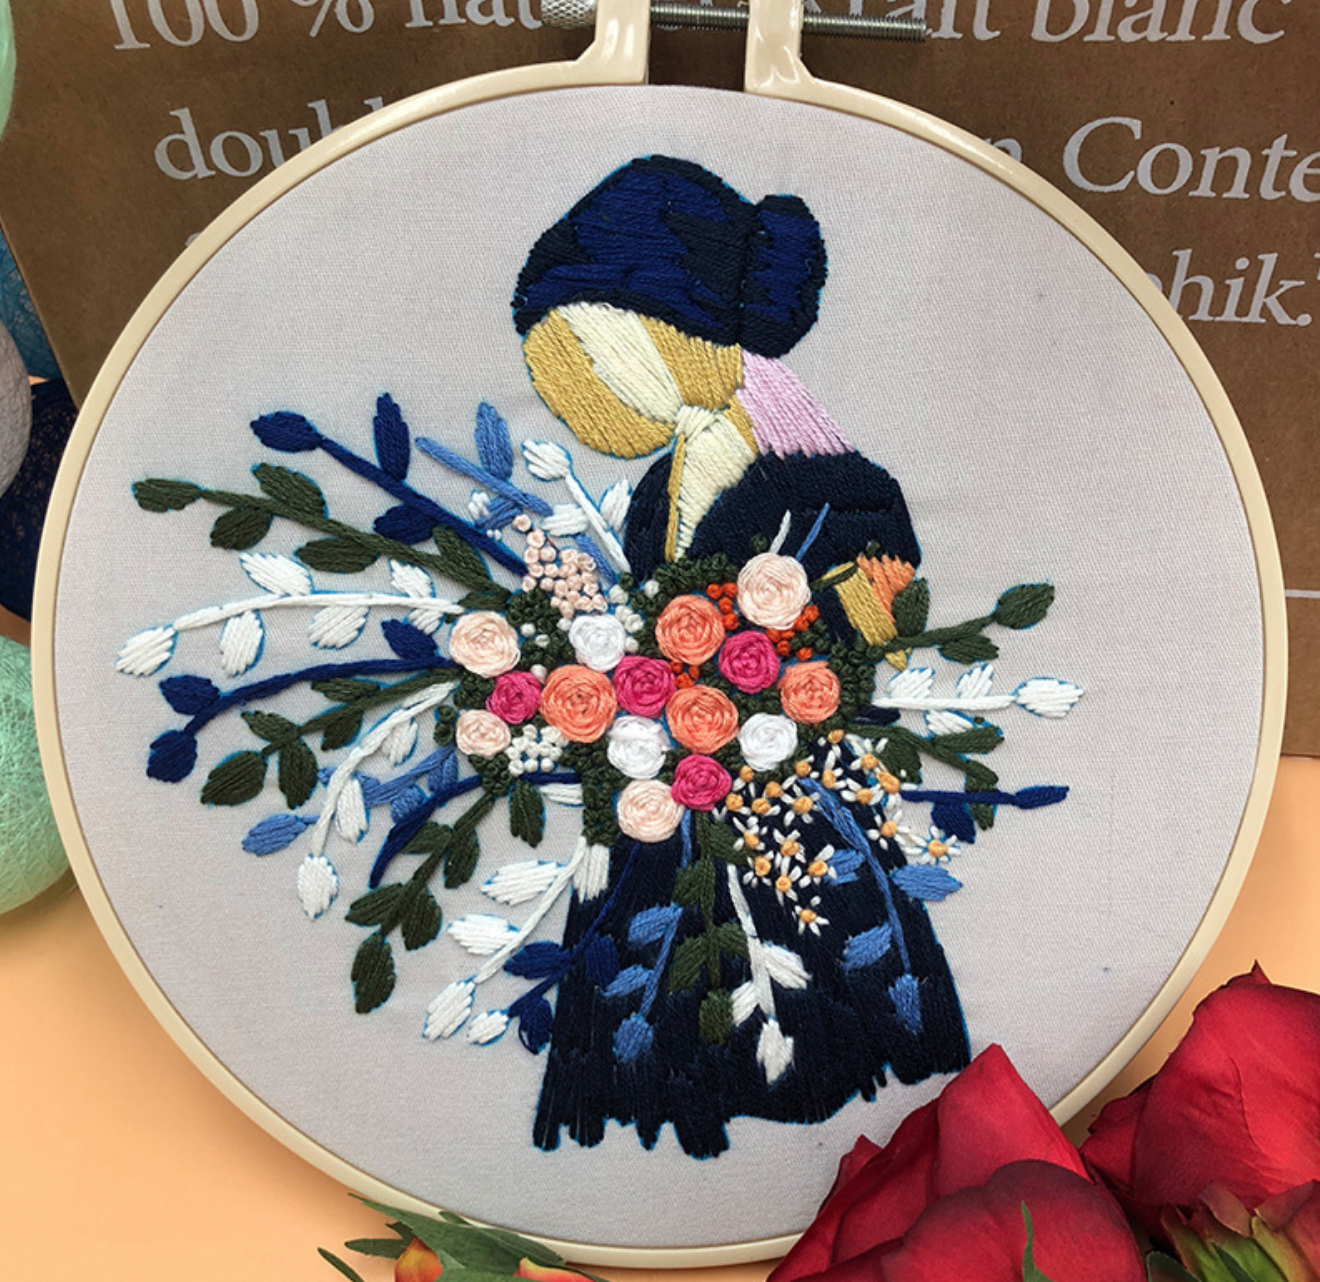 Blonde Woman with Pink/Orange/White Bouquet Embroidery